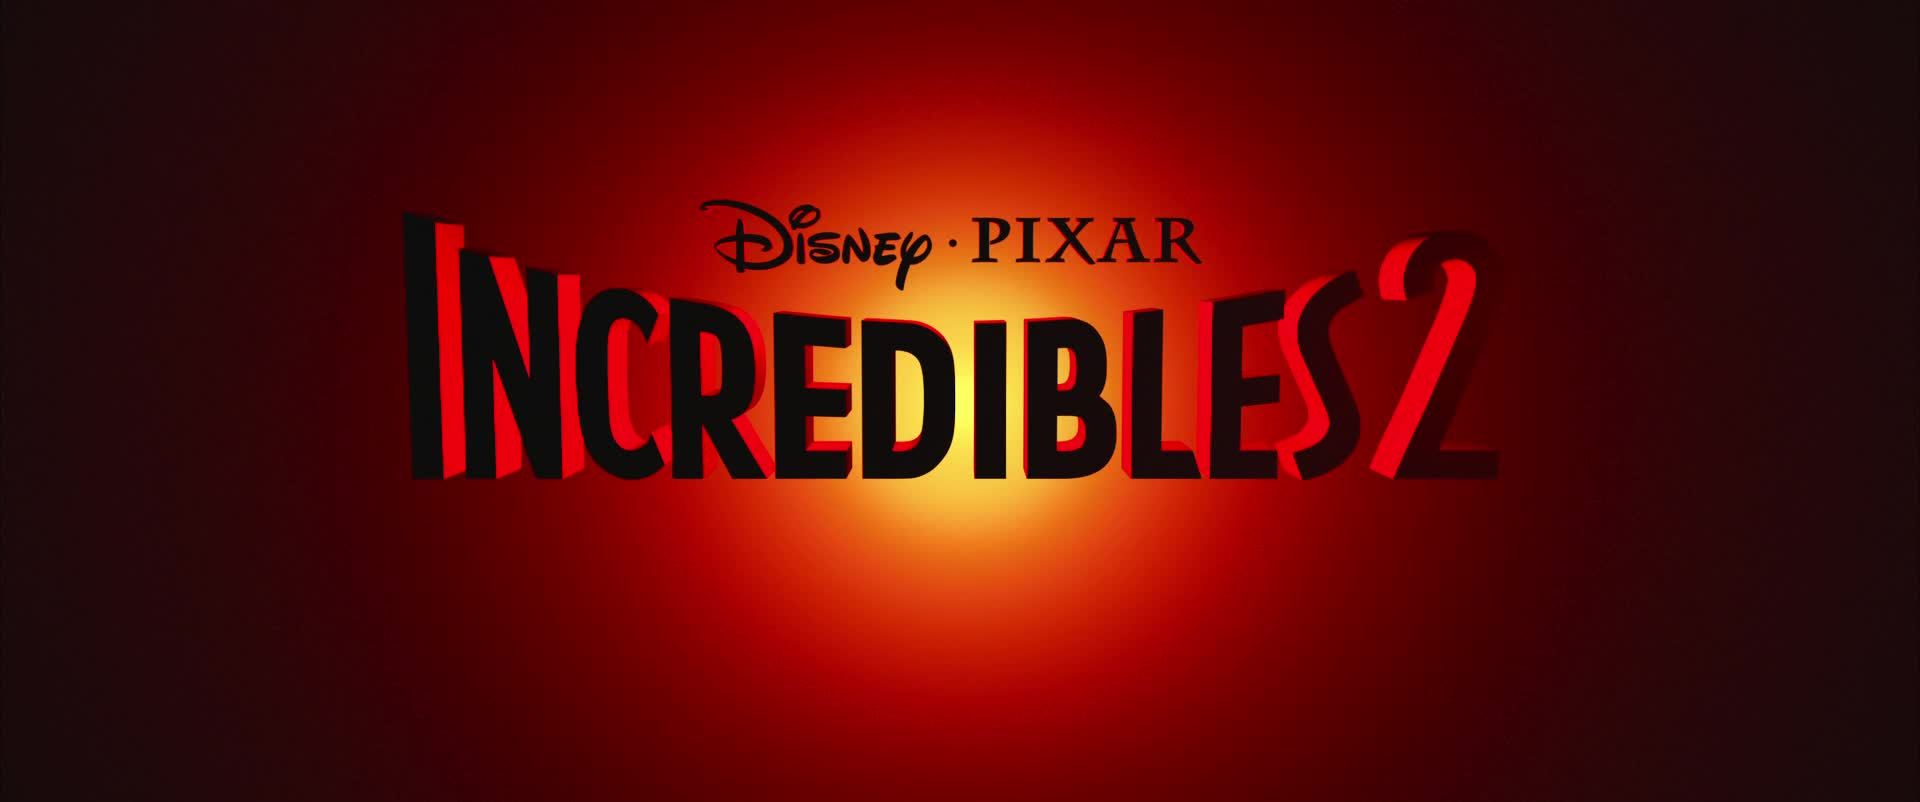 TORRENT!] The Incredibles 2 download 720p/1080p mkv on Scratch